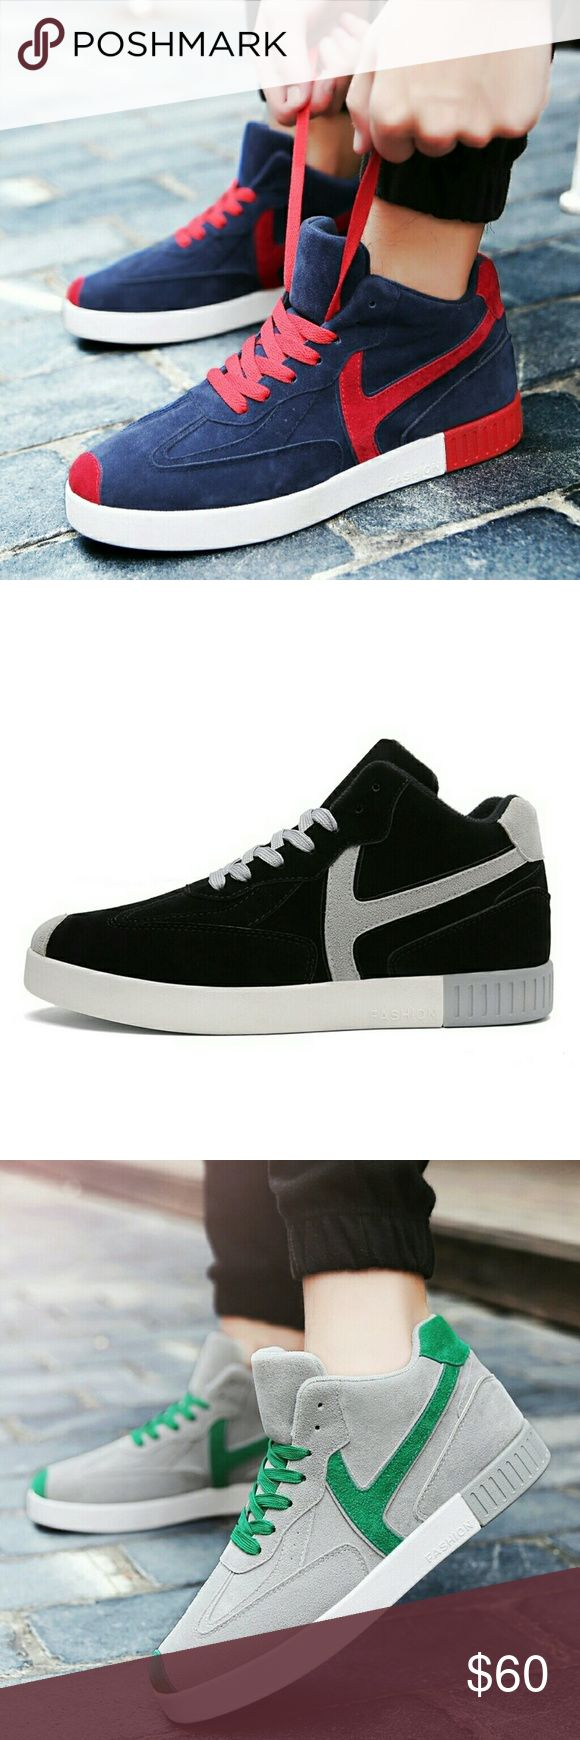 Casual Hightop Sneakers They are selling on our online store at www.thokoplace.com and available in different colors. Sizes 6 to 10 in stock. Shoes Sneakers